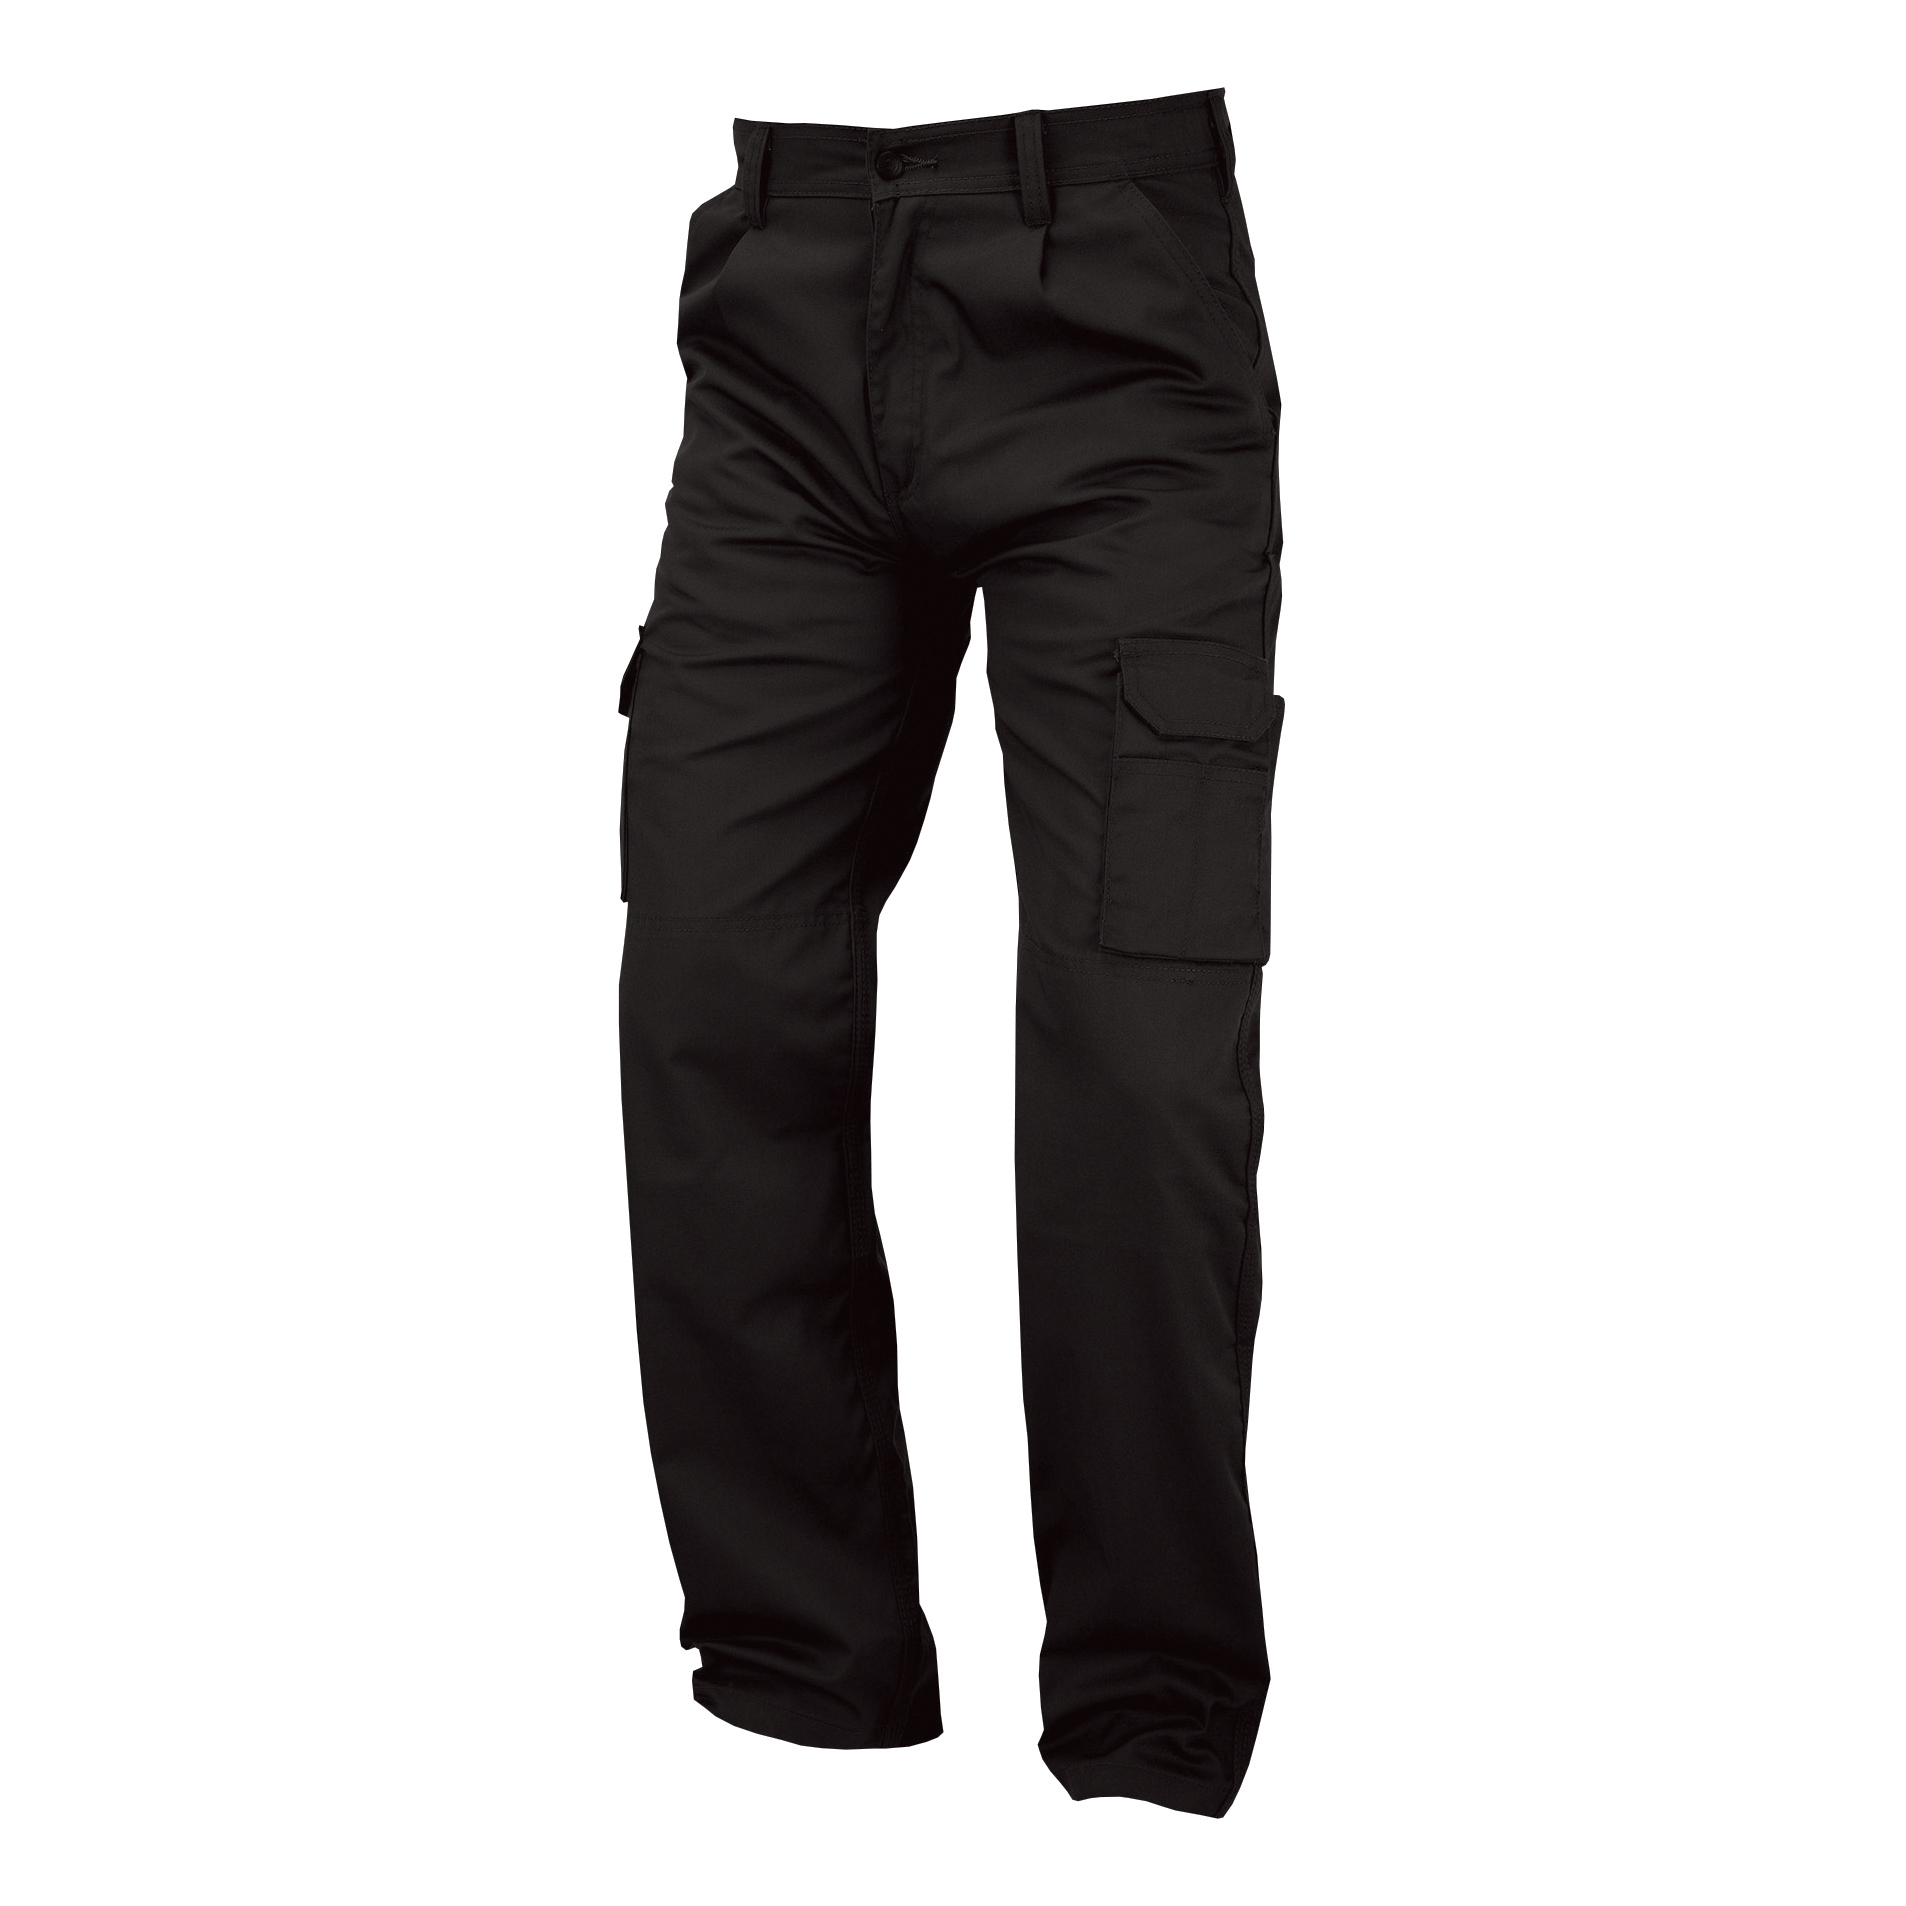 Combat Trouser Multi-functional Waist 34in Leg 29in Black Ref PCTHWBL34S *Approx 3 Day Leadtime*